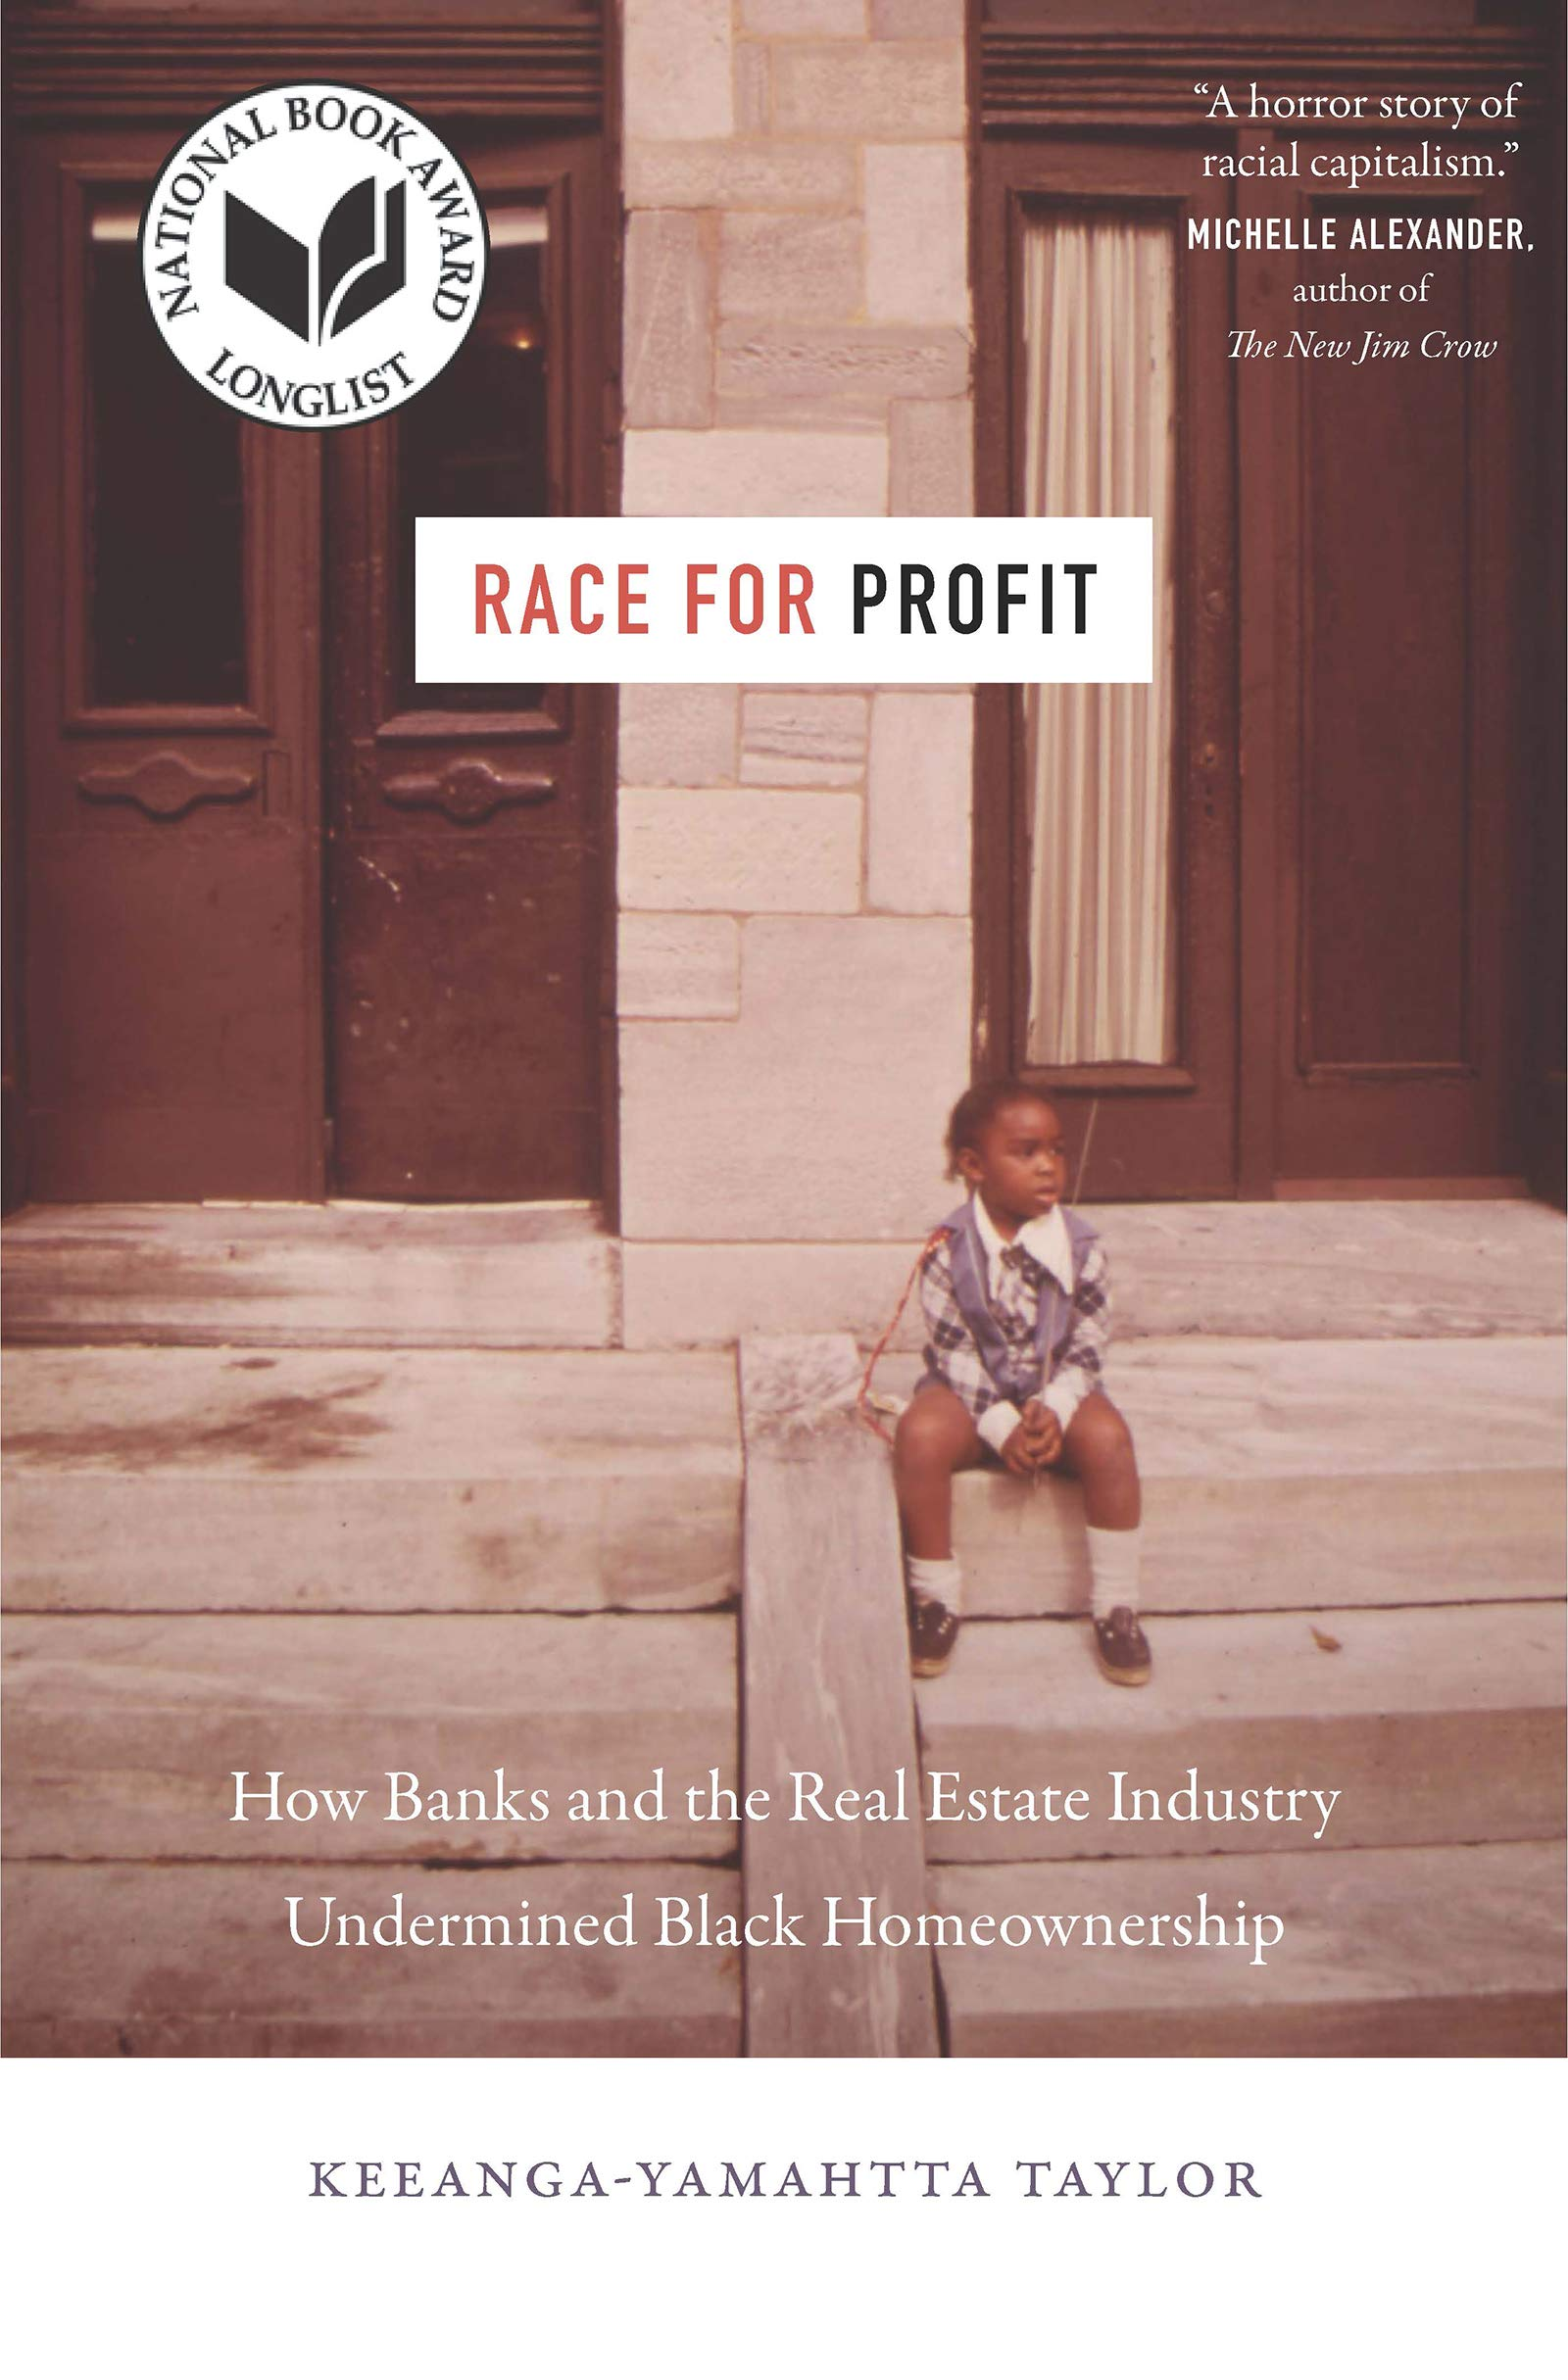 Race for Profit: How Banks and the Real Estate Industry Undermined Black Homeownership (Justice, Power, and Politics) (English Edition)